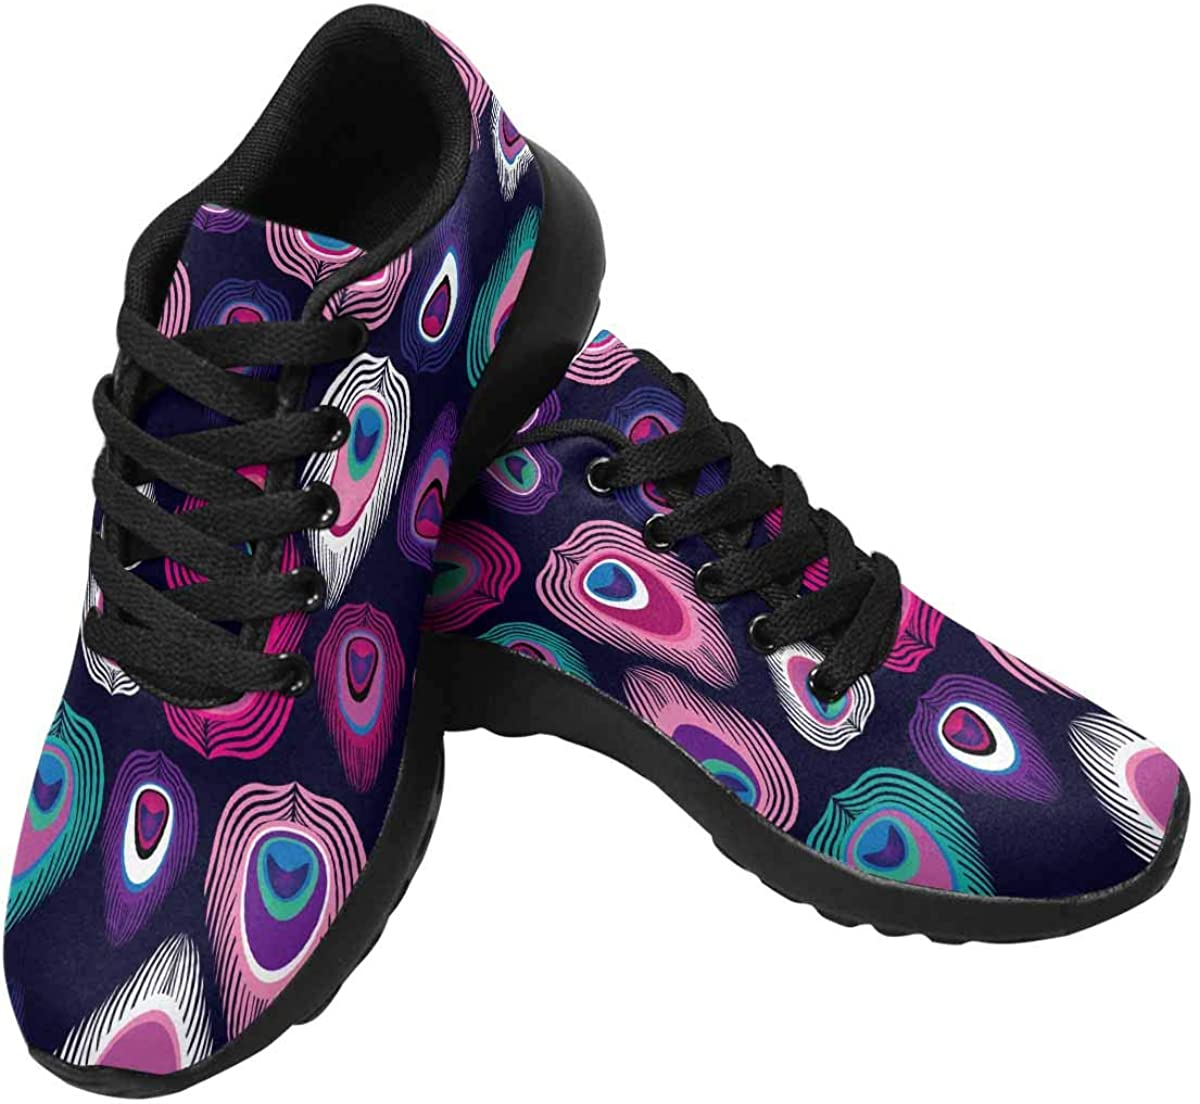 InterestPrint Womens 正規品 Running 直営店 Sneakers Breathable Lightweight Ath